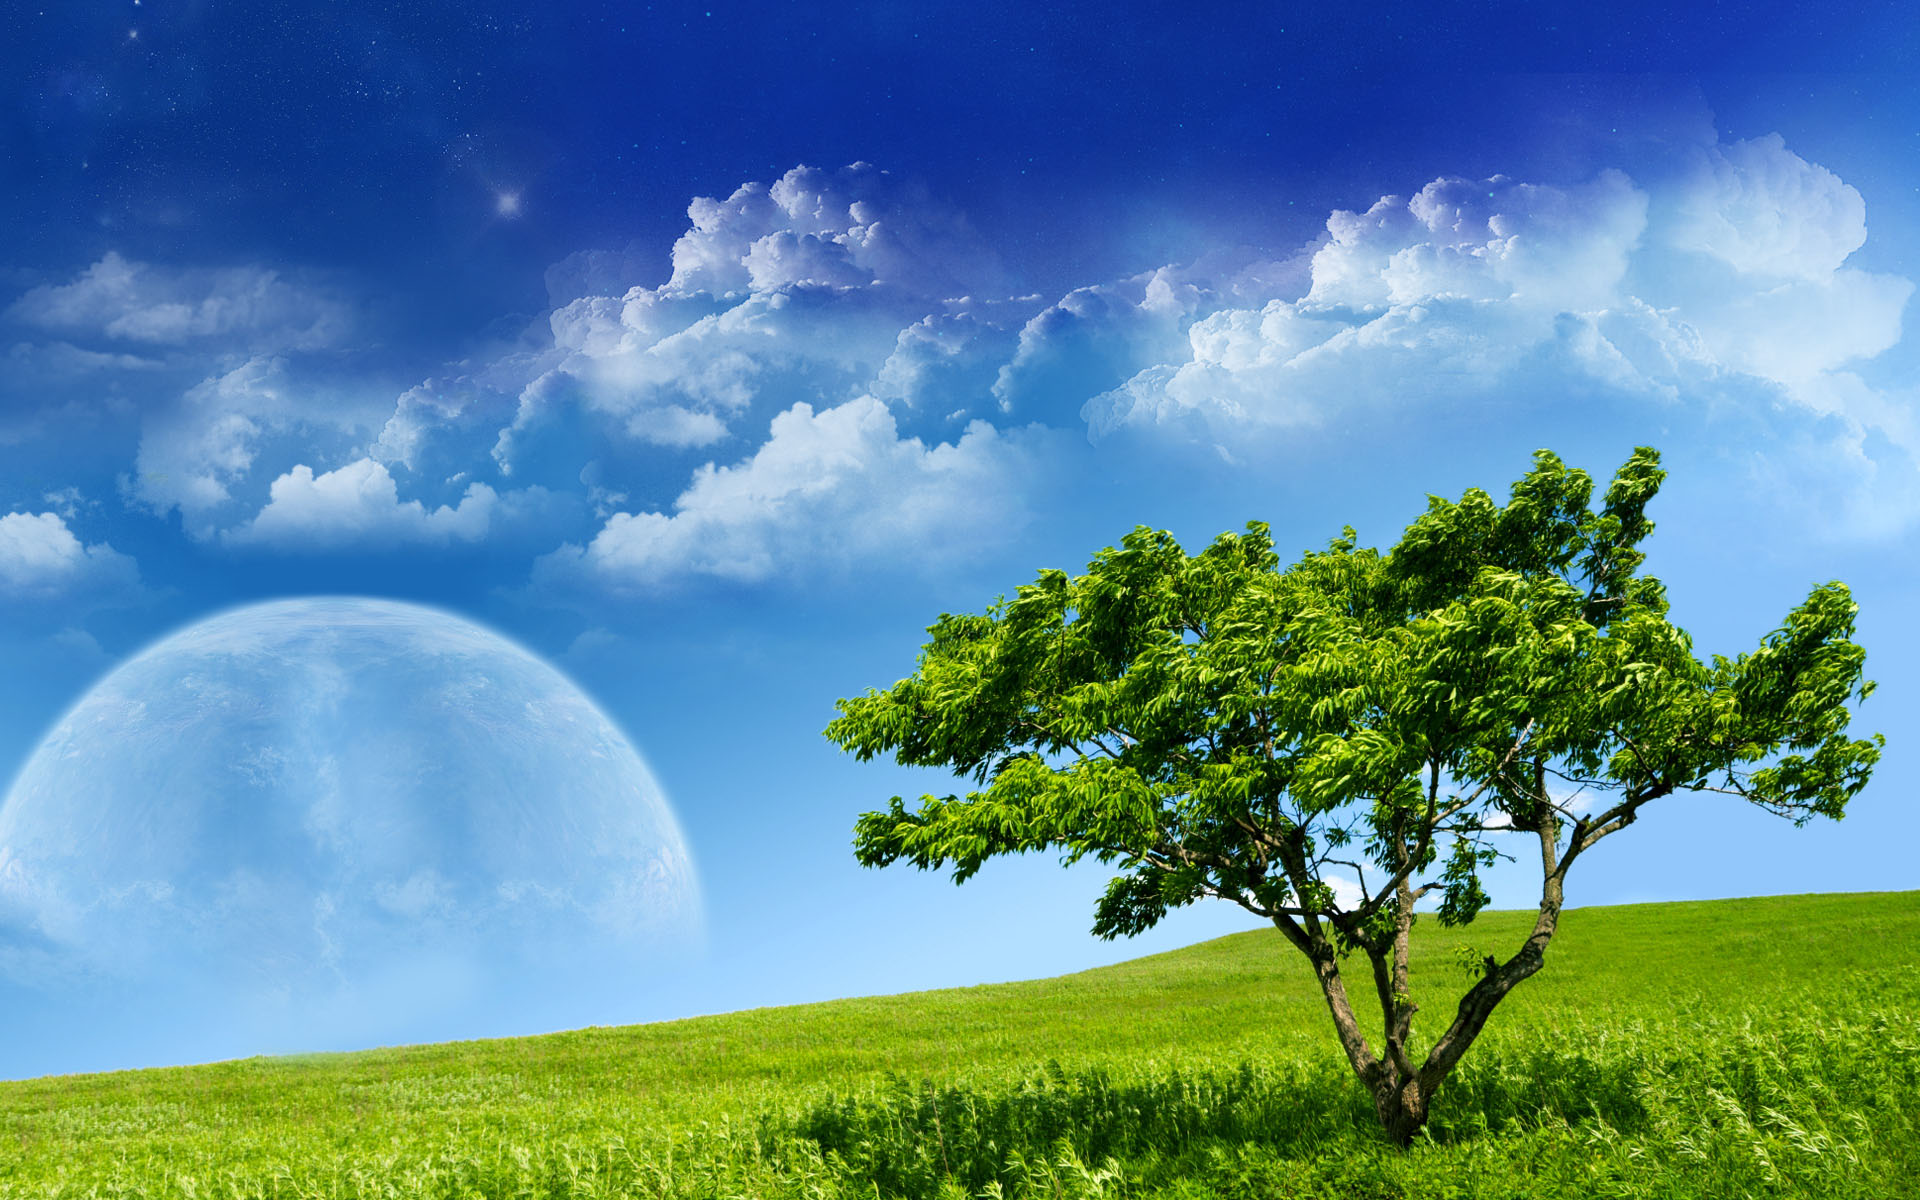 Beautiful Sky Moon in Spring HD Wallpaper Nature Wallpapers 1920x1200